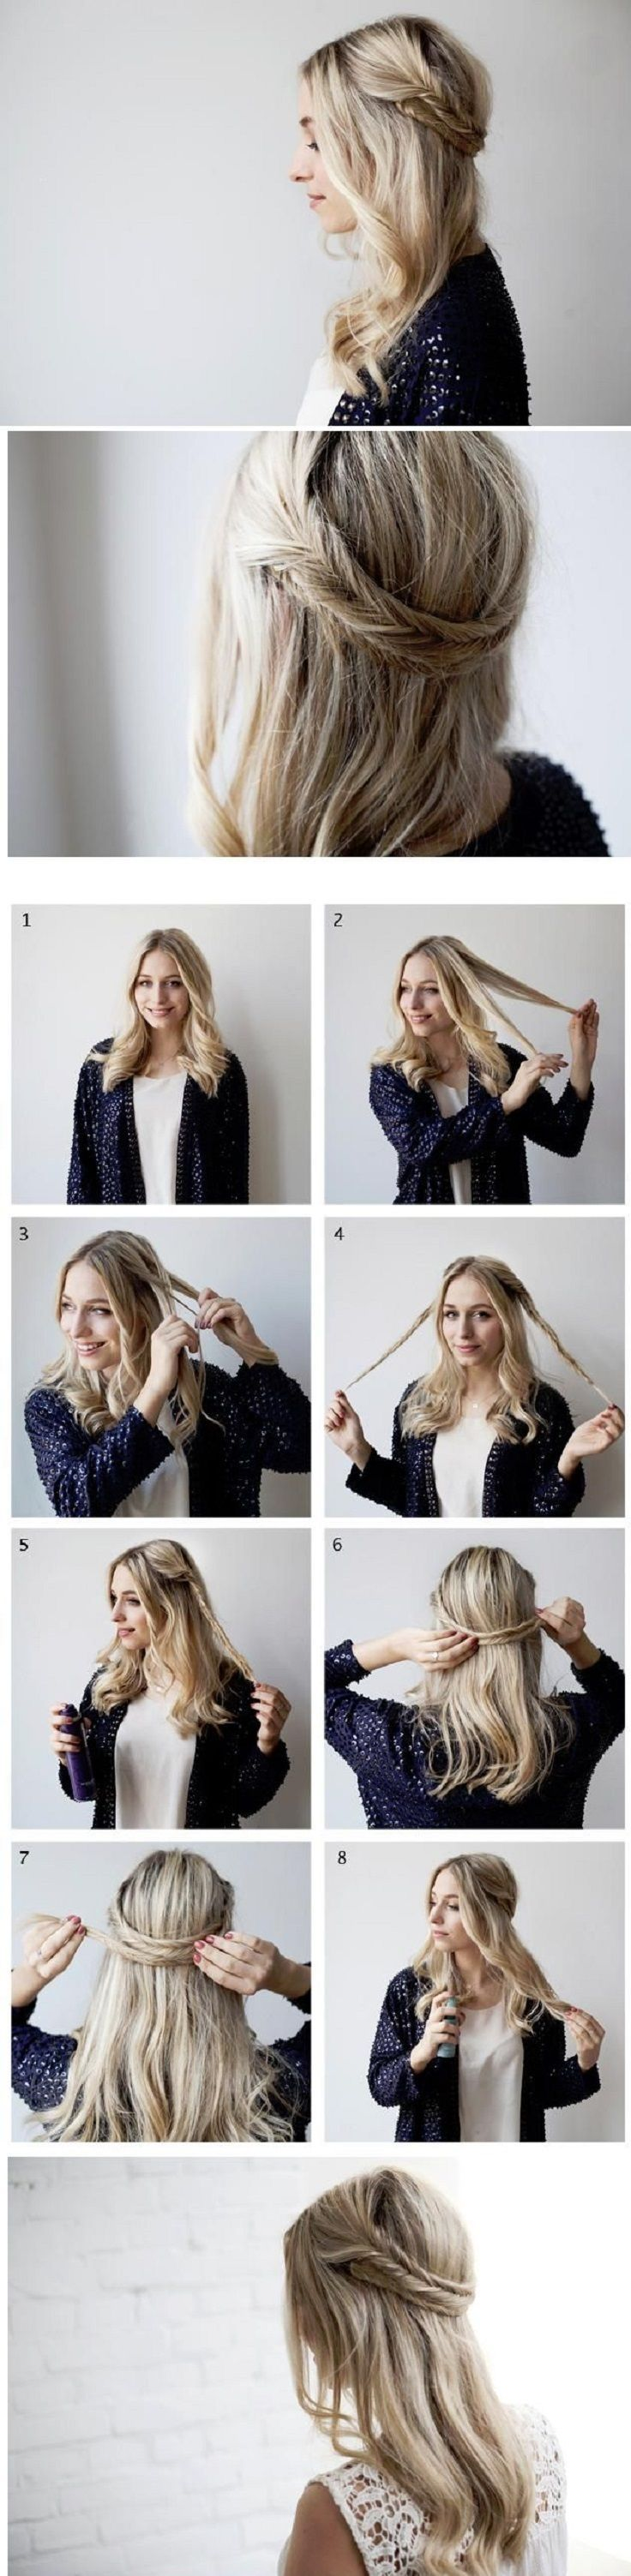 easy braided summer hairstyles hairstyles and haircuts